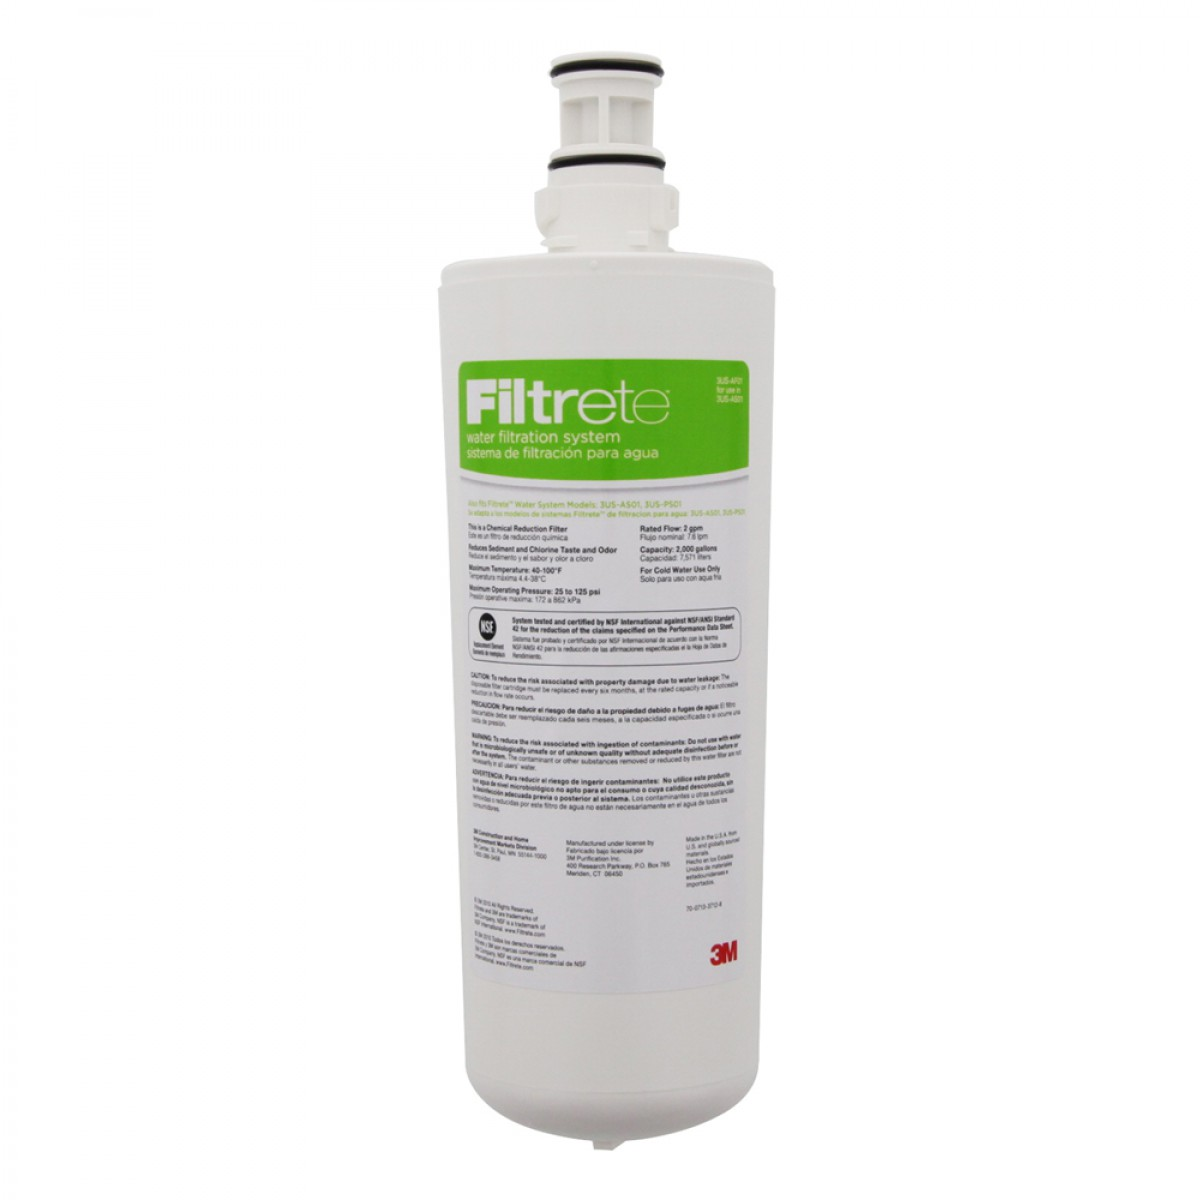 3m Filtrete 3us Af01 Undersink Water Filter